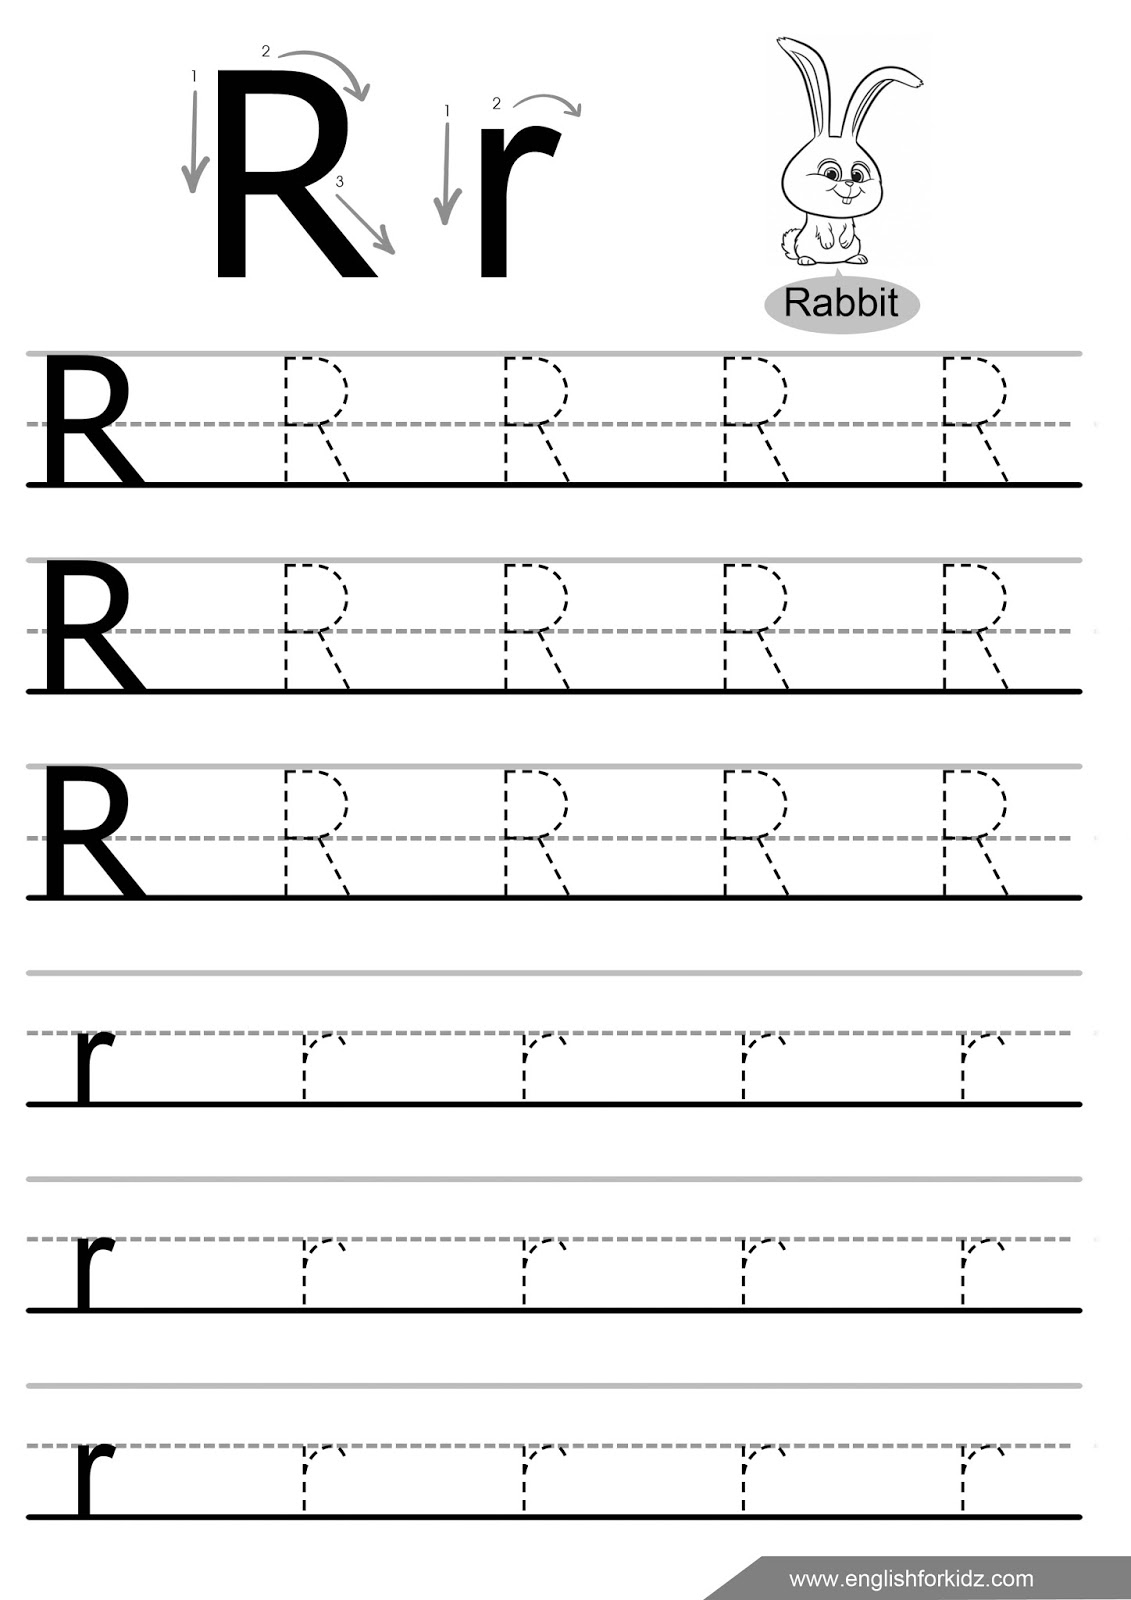 Worksheet ~ Worksheet Tracing Letter Sheets Continuum pertaining to Letter R Tracing Pages